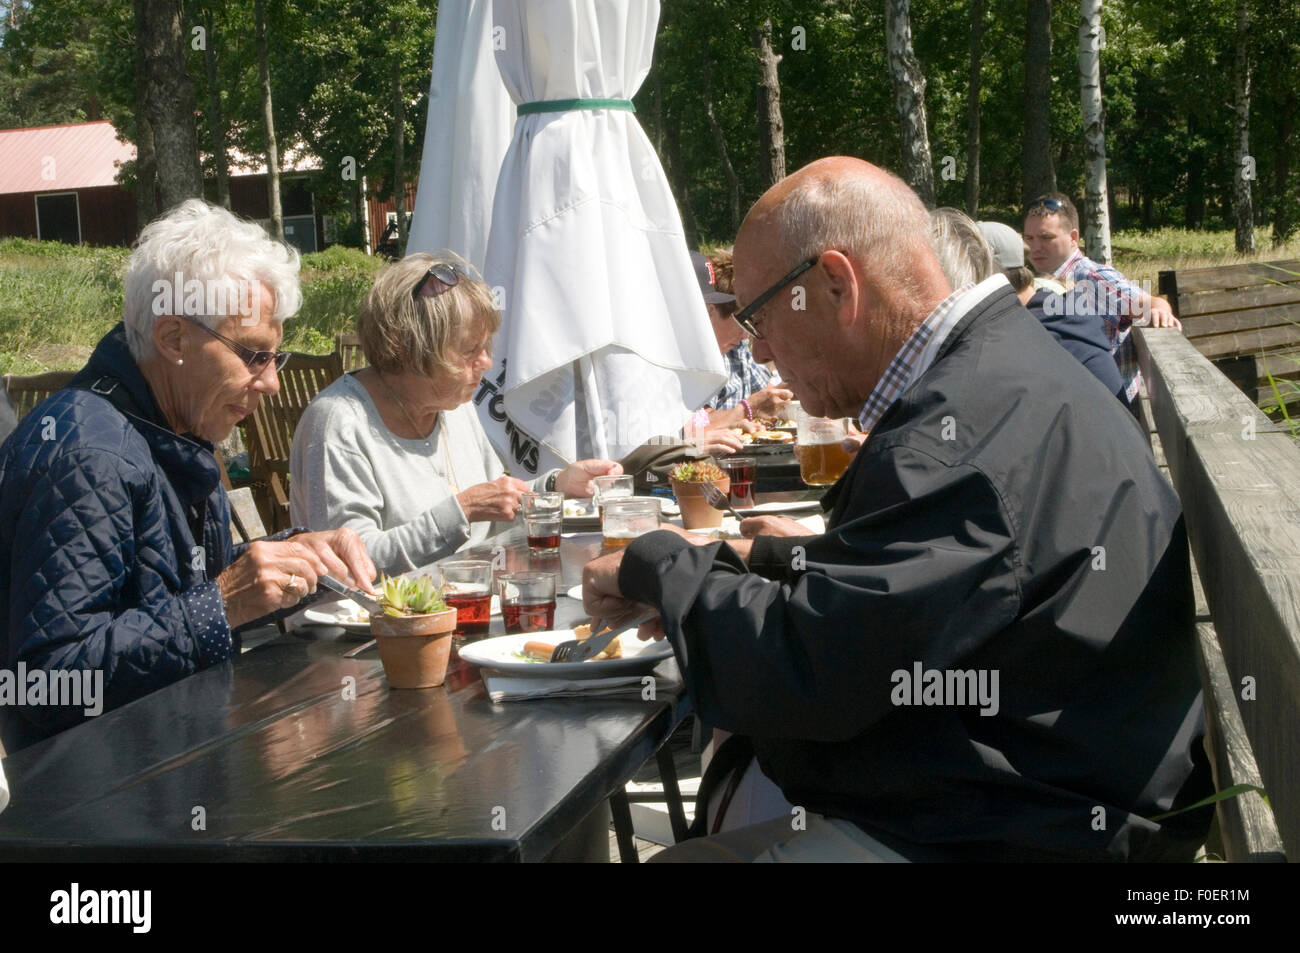 sweden swedish pensioners pensions pension Scandinavian state Scandinavians retirement income meal eating restaurant - Stock Image